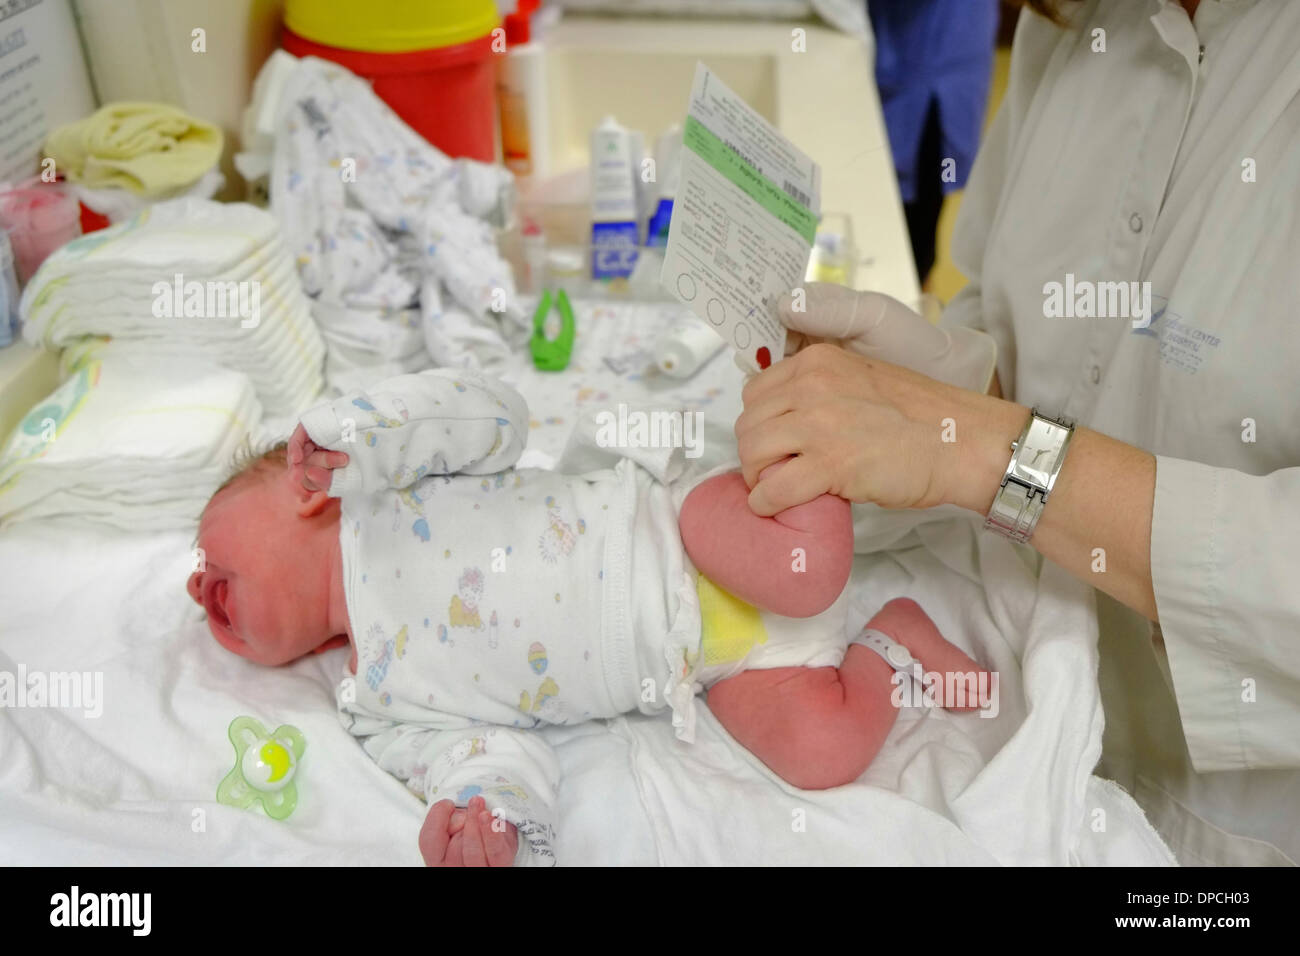 Doctor performs a blood test on a newborn infant baby in a maternity ward - Stock Image